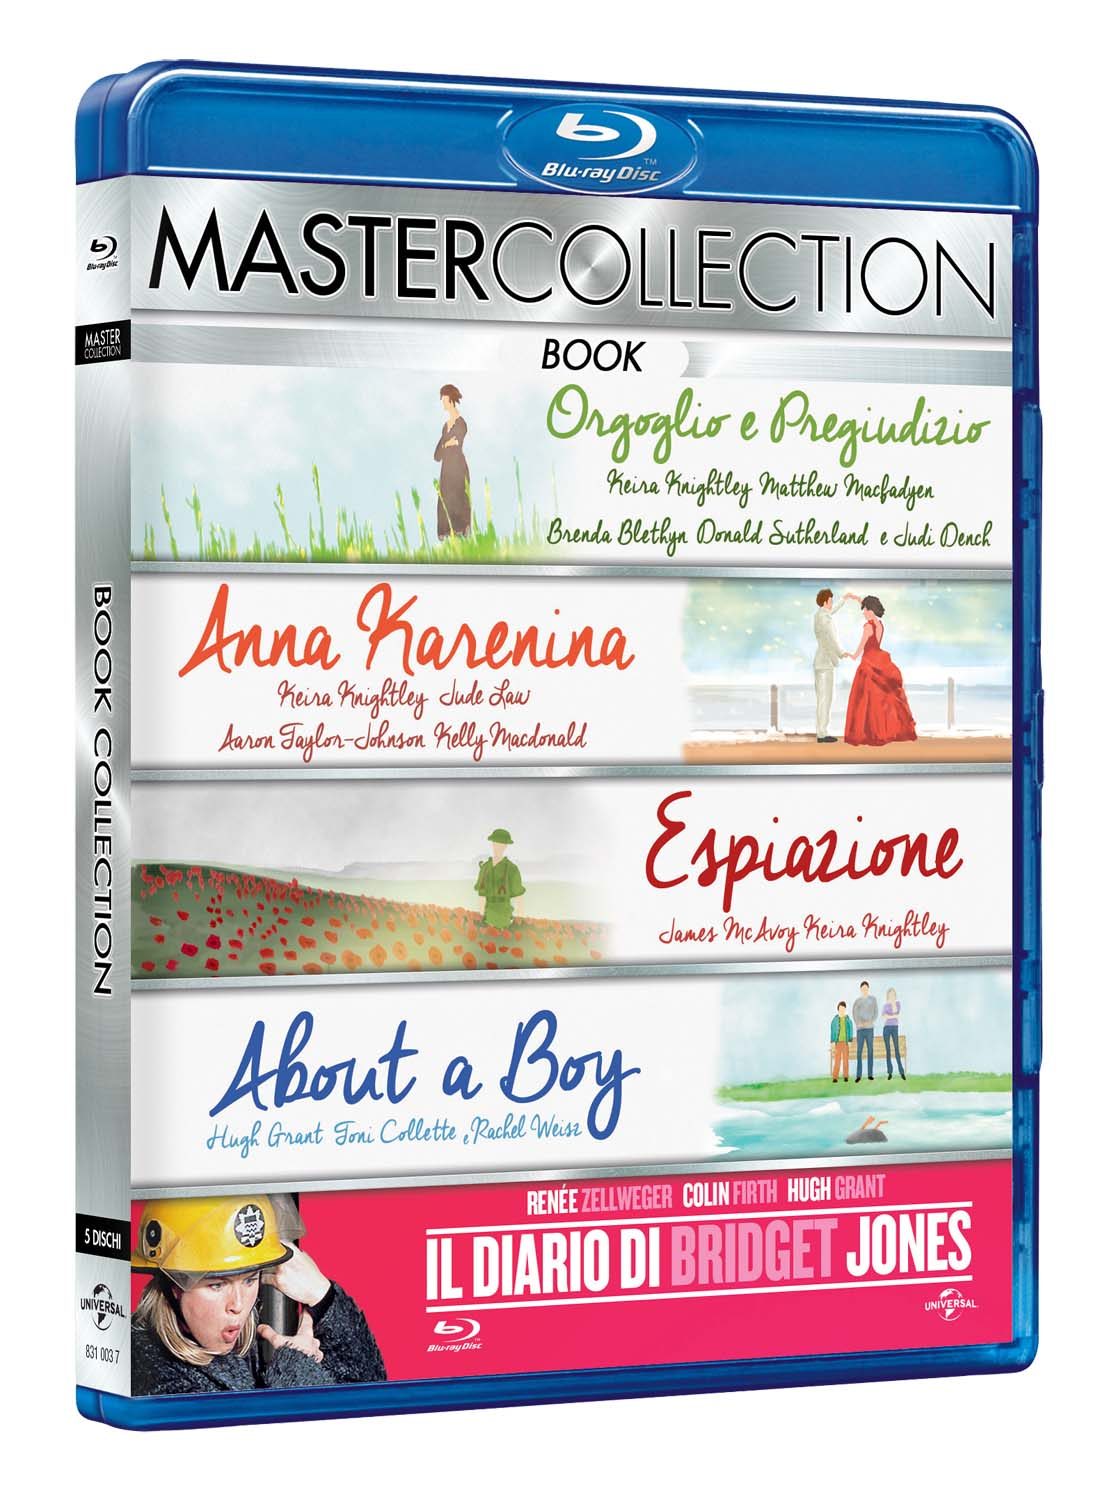 COF. BOOK MASTER COLLECTION (5 BLU-RAY)